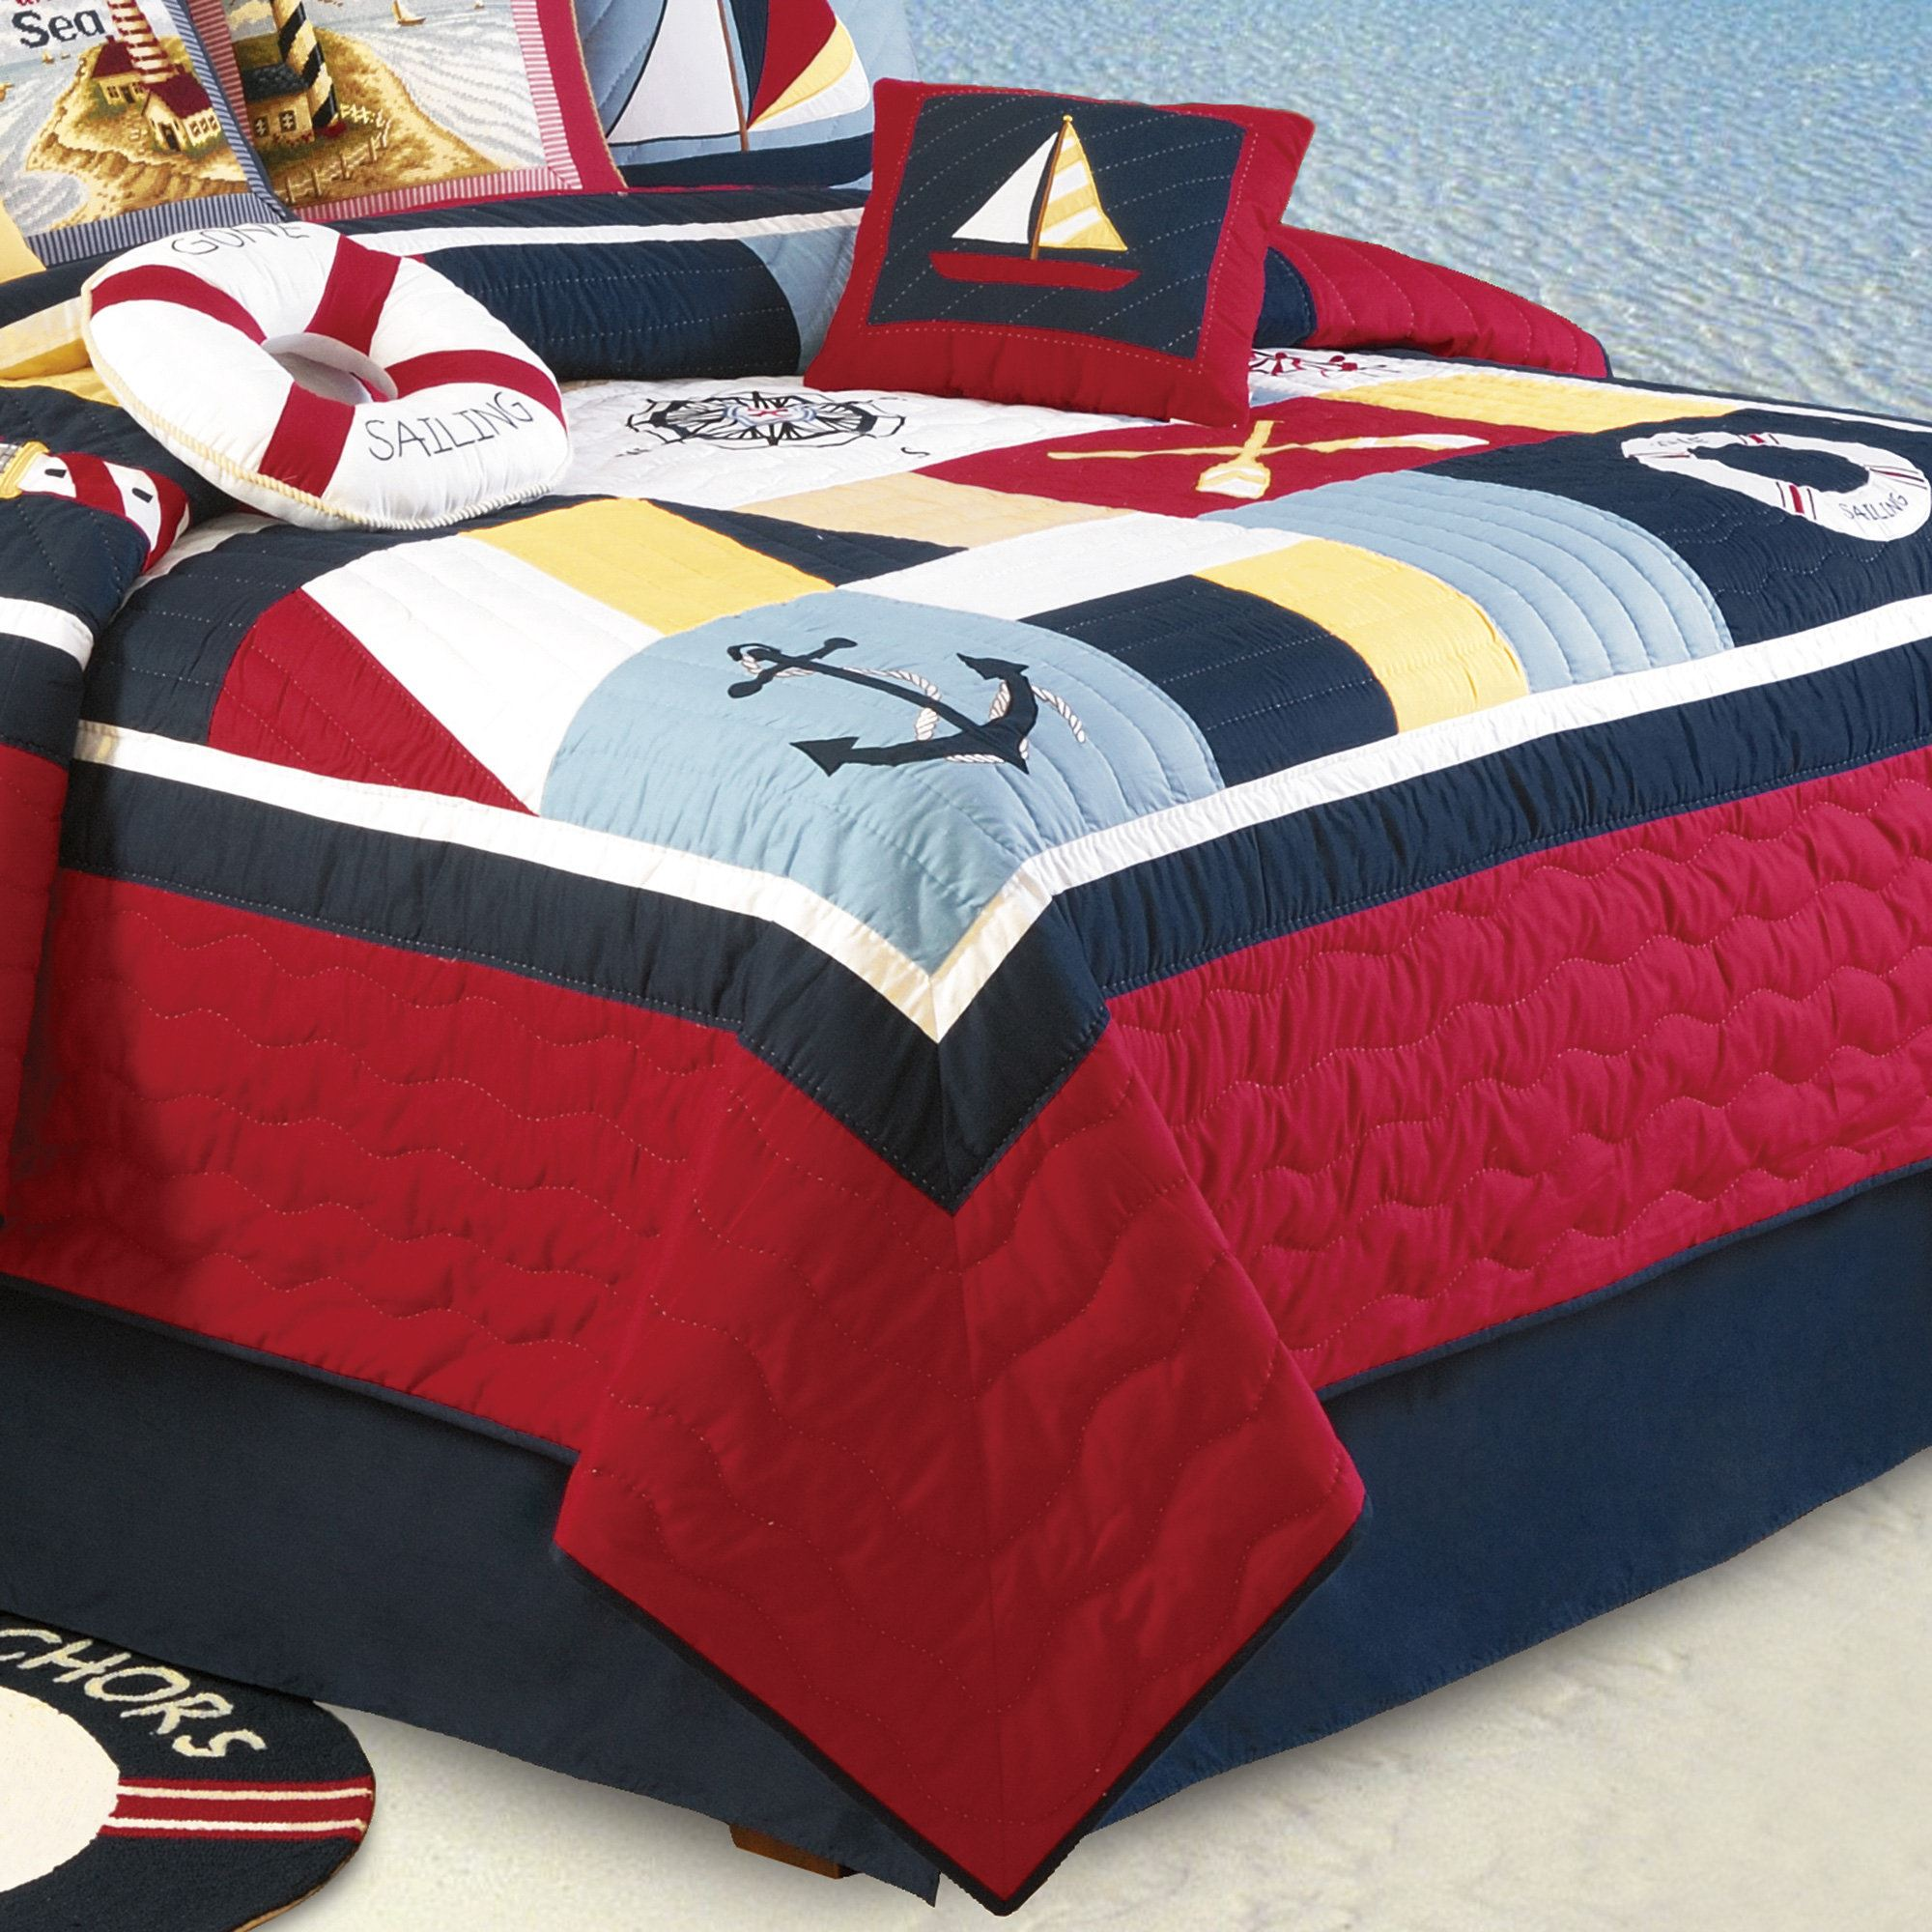 check plaid quilt cabin buffalo bedding western red redplcaqu set